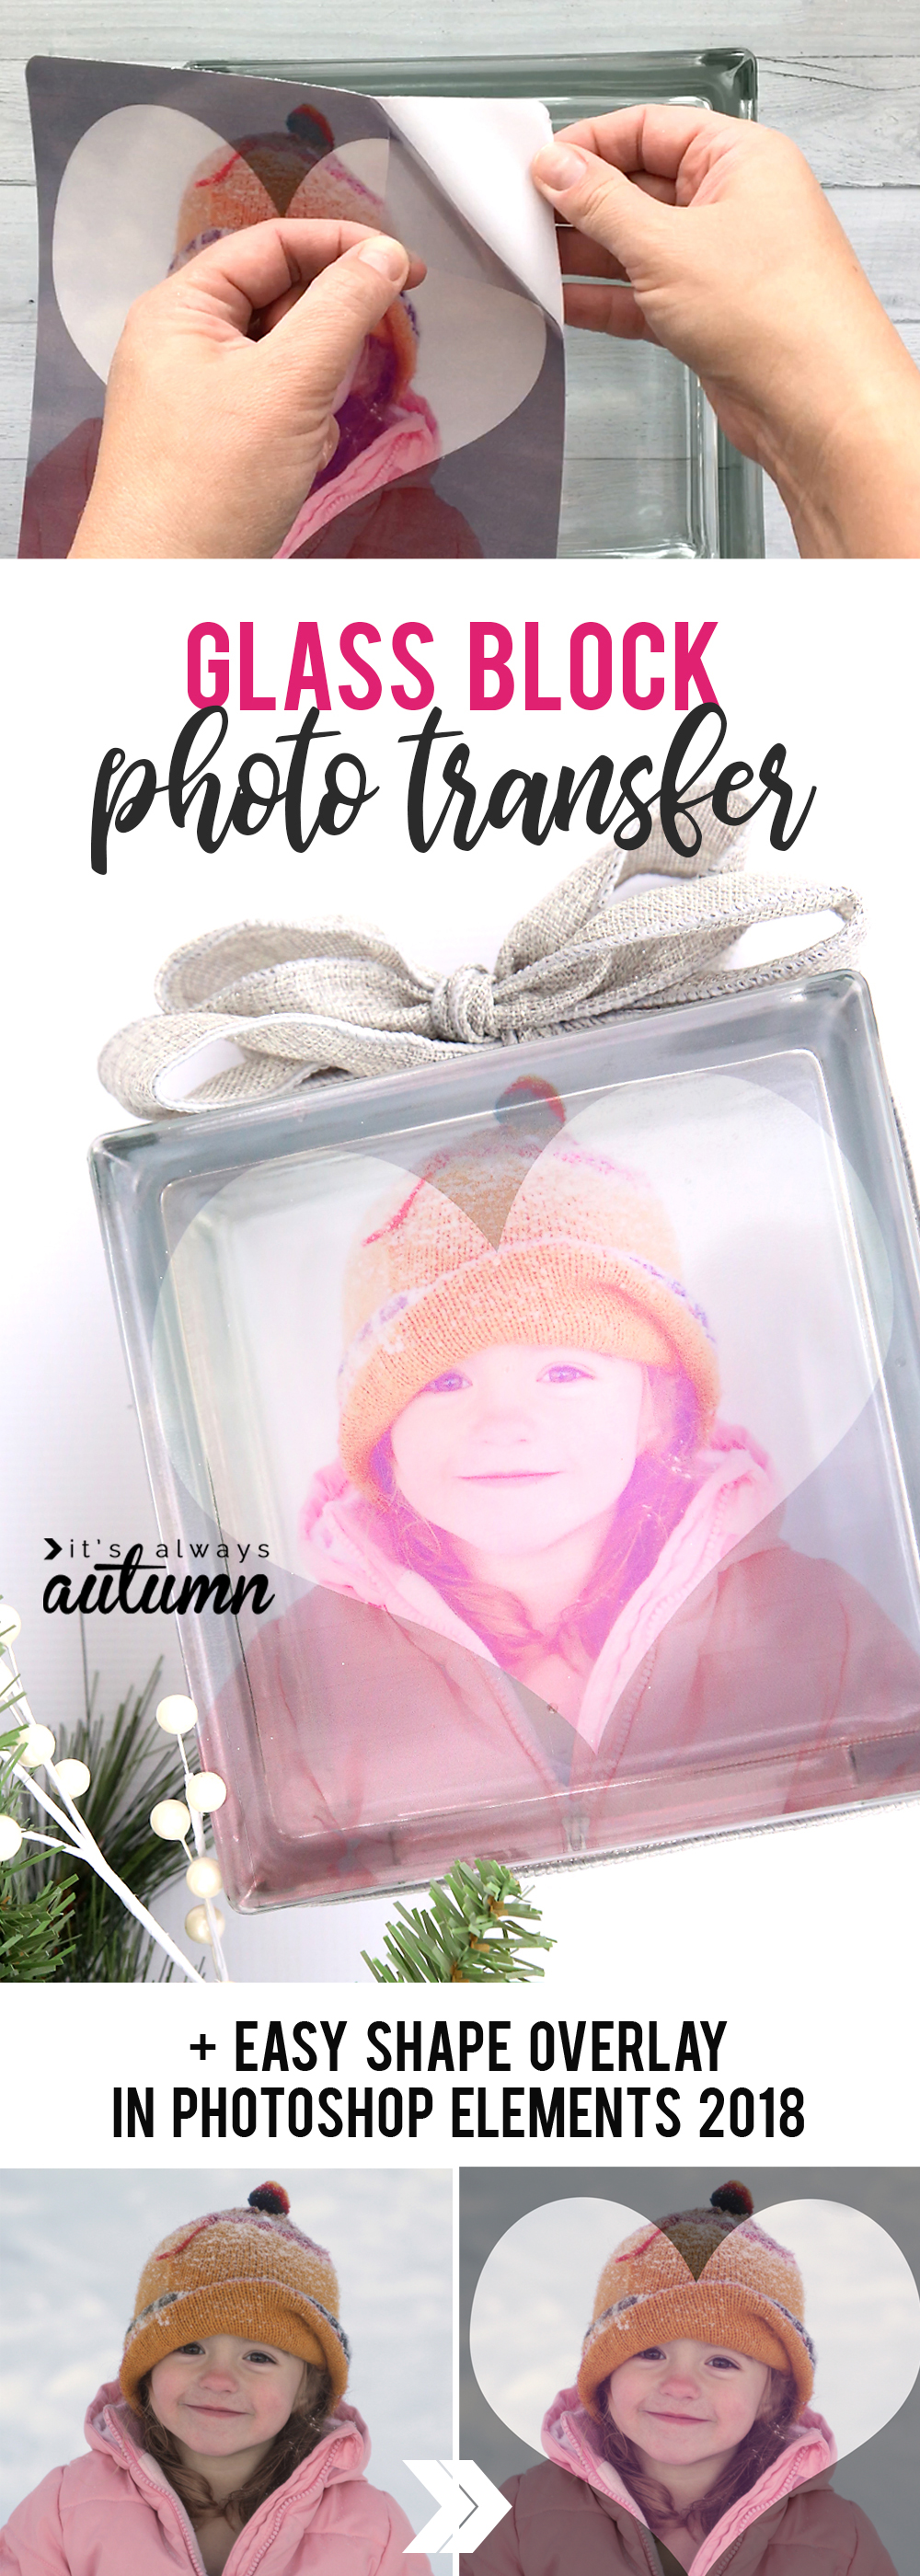 How to make a glass photo block - it's so easy! Gorgeous DIY gift idea.